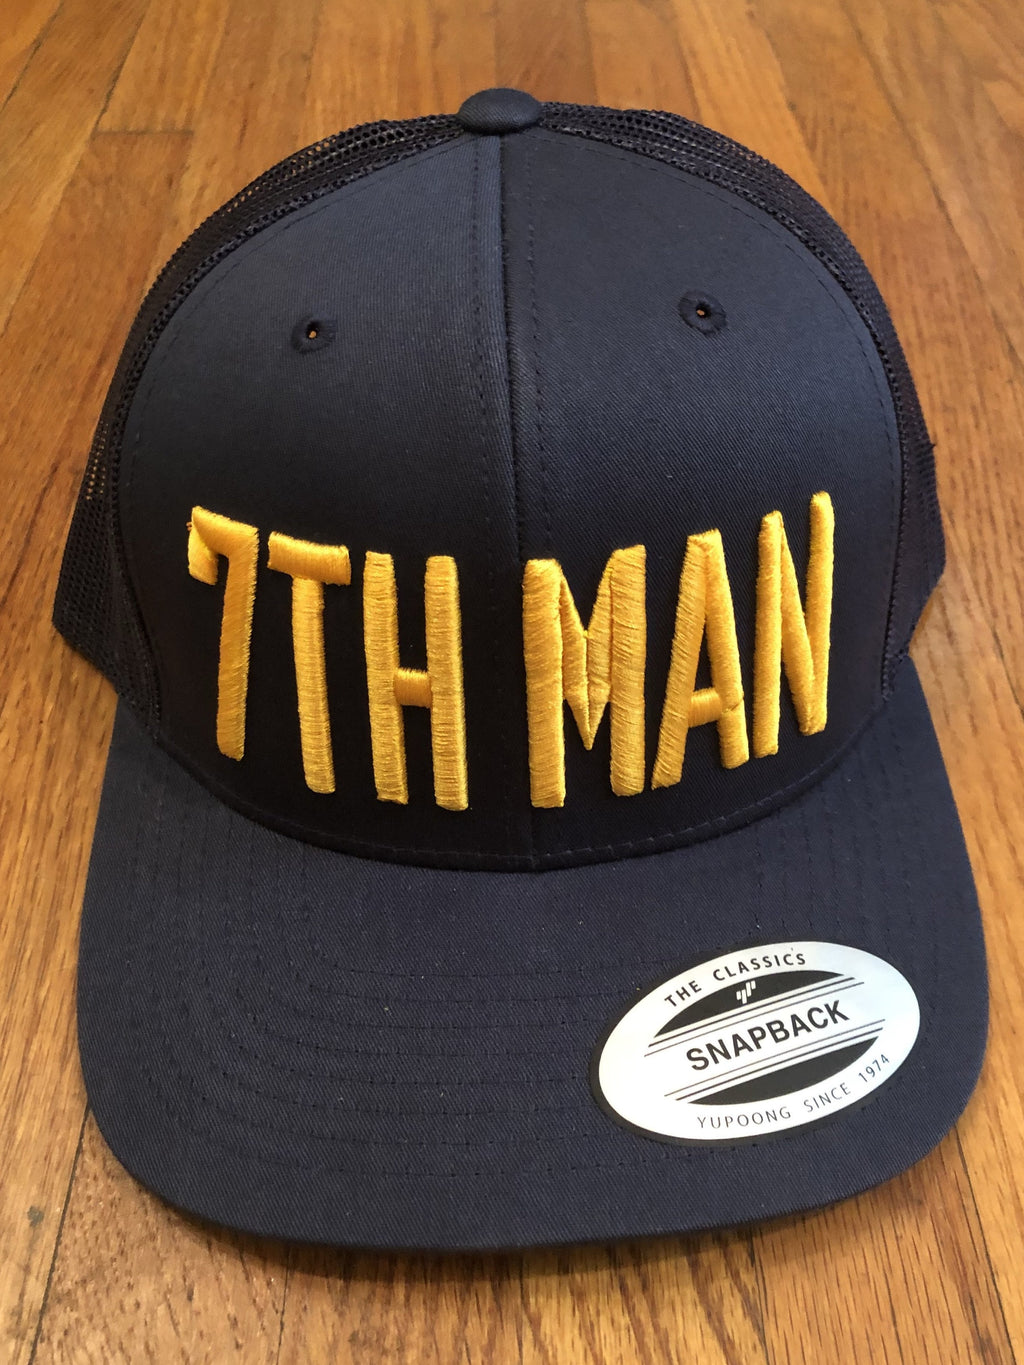 7th Man Hat Snapback - So Nashville